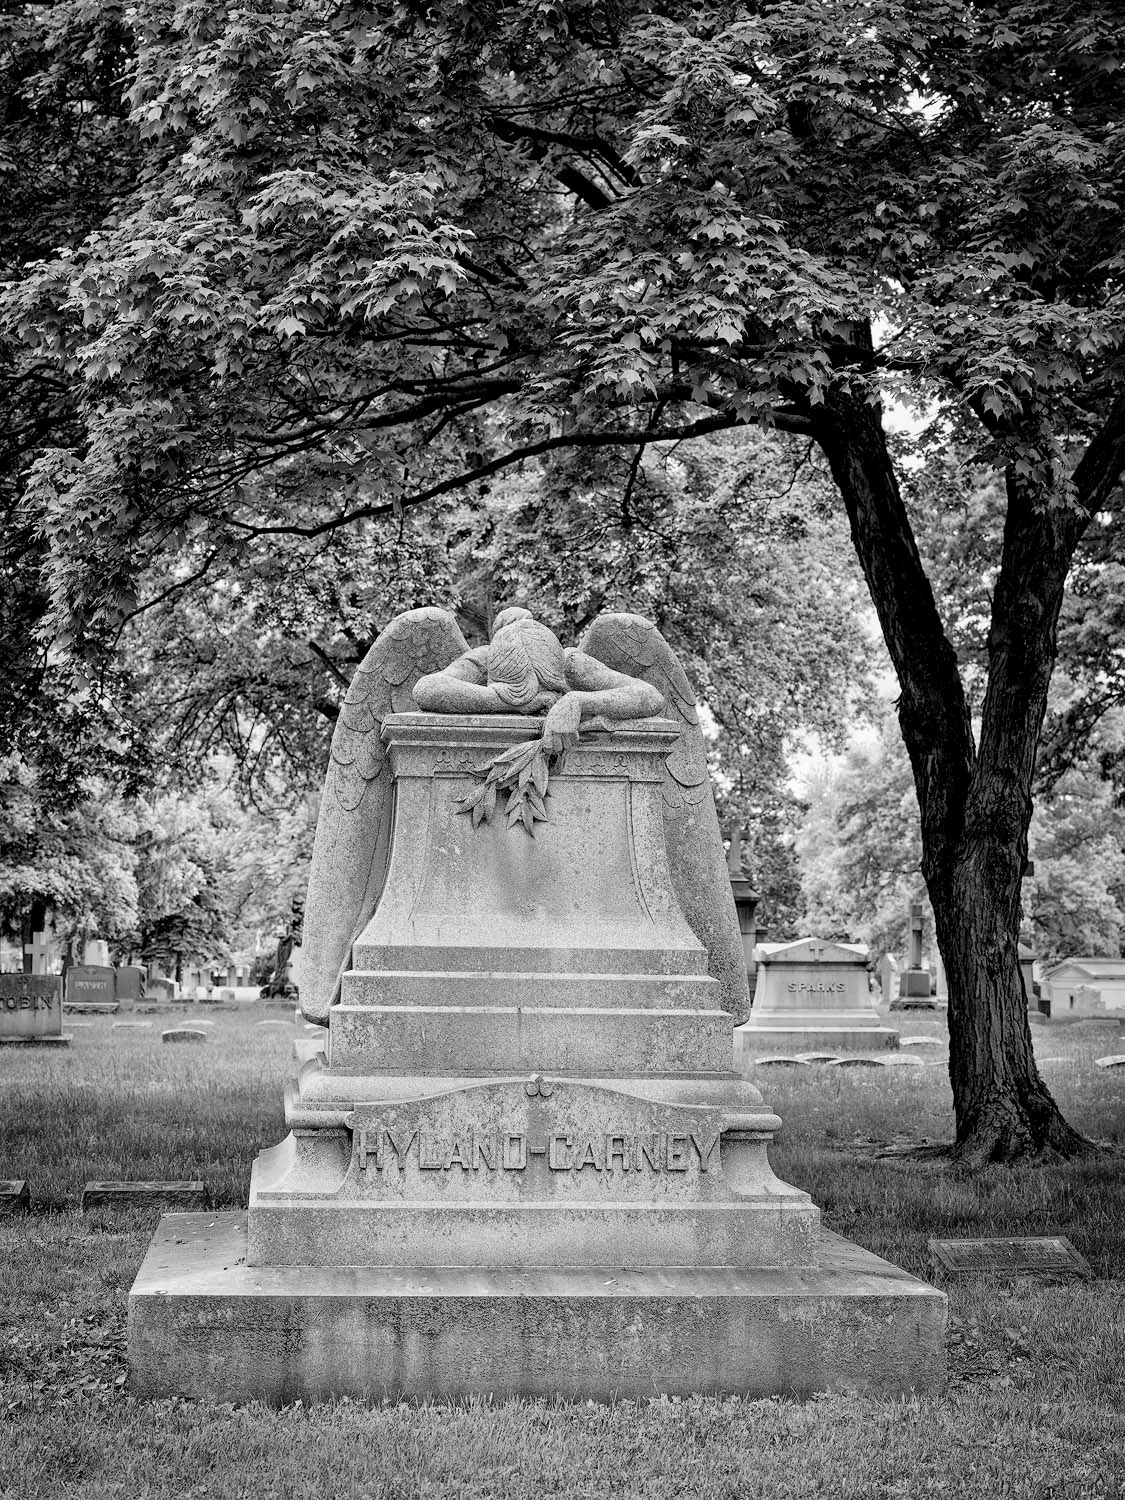 architecture, WORLD REGIONS & COUNTRIES, North America, United States of America, Missouri, St. Louis, Calvary Cemetery, landscape, cemetery, sculpture, death, photo